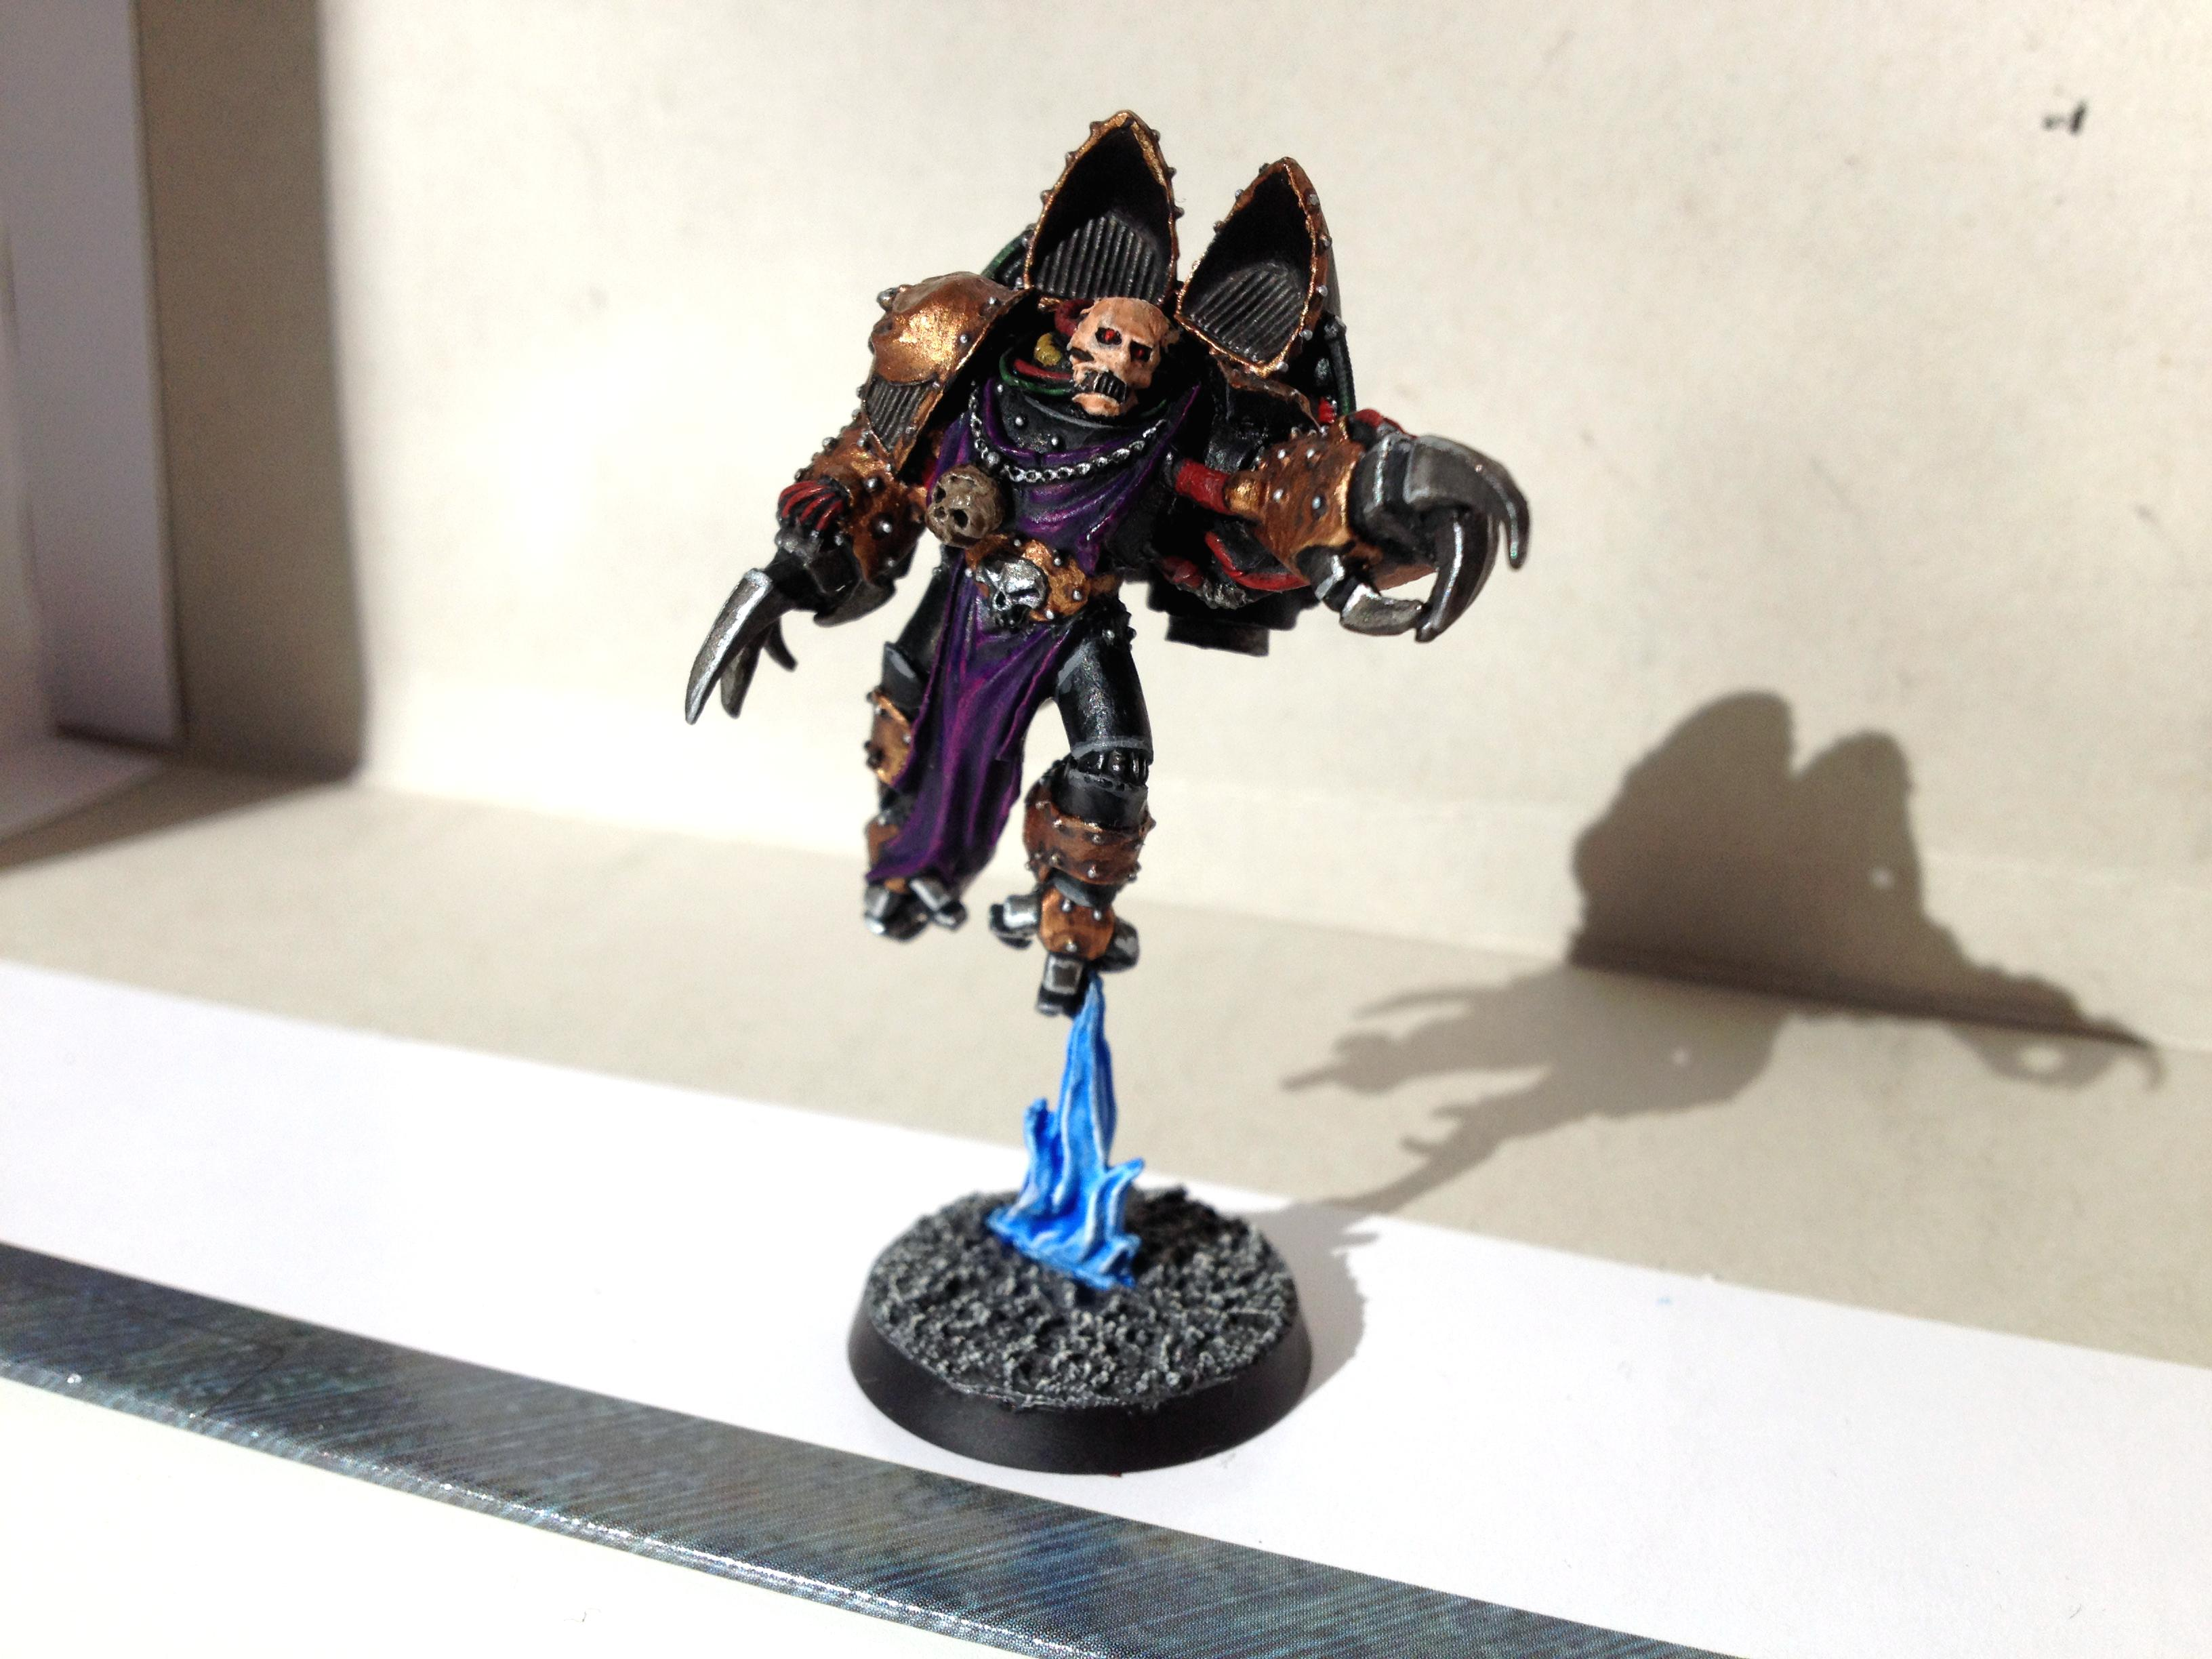 Airborne, Conversion, Flame Stand